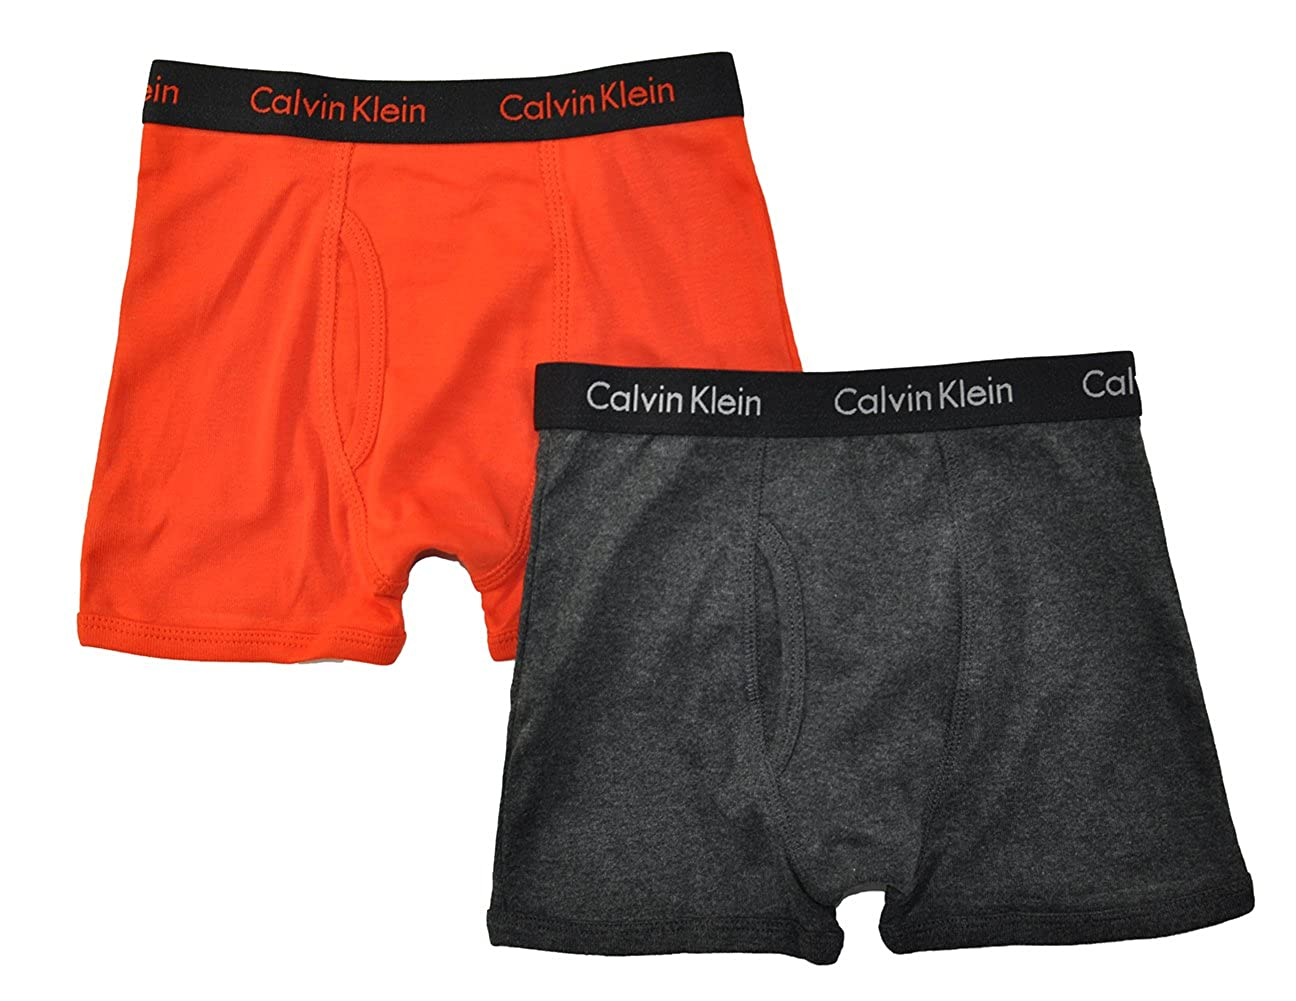 Calvin Klein Little/Big Boys' Assorted Boxer Briefs (Pack of 2) (X-Small / 4-5, Orange/Charcoal) 37D67173